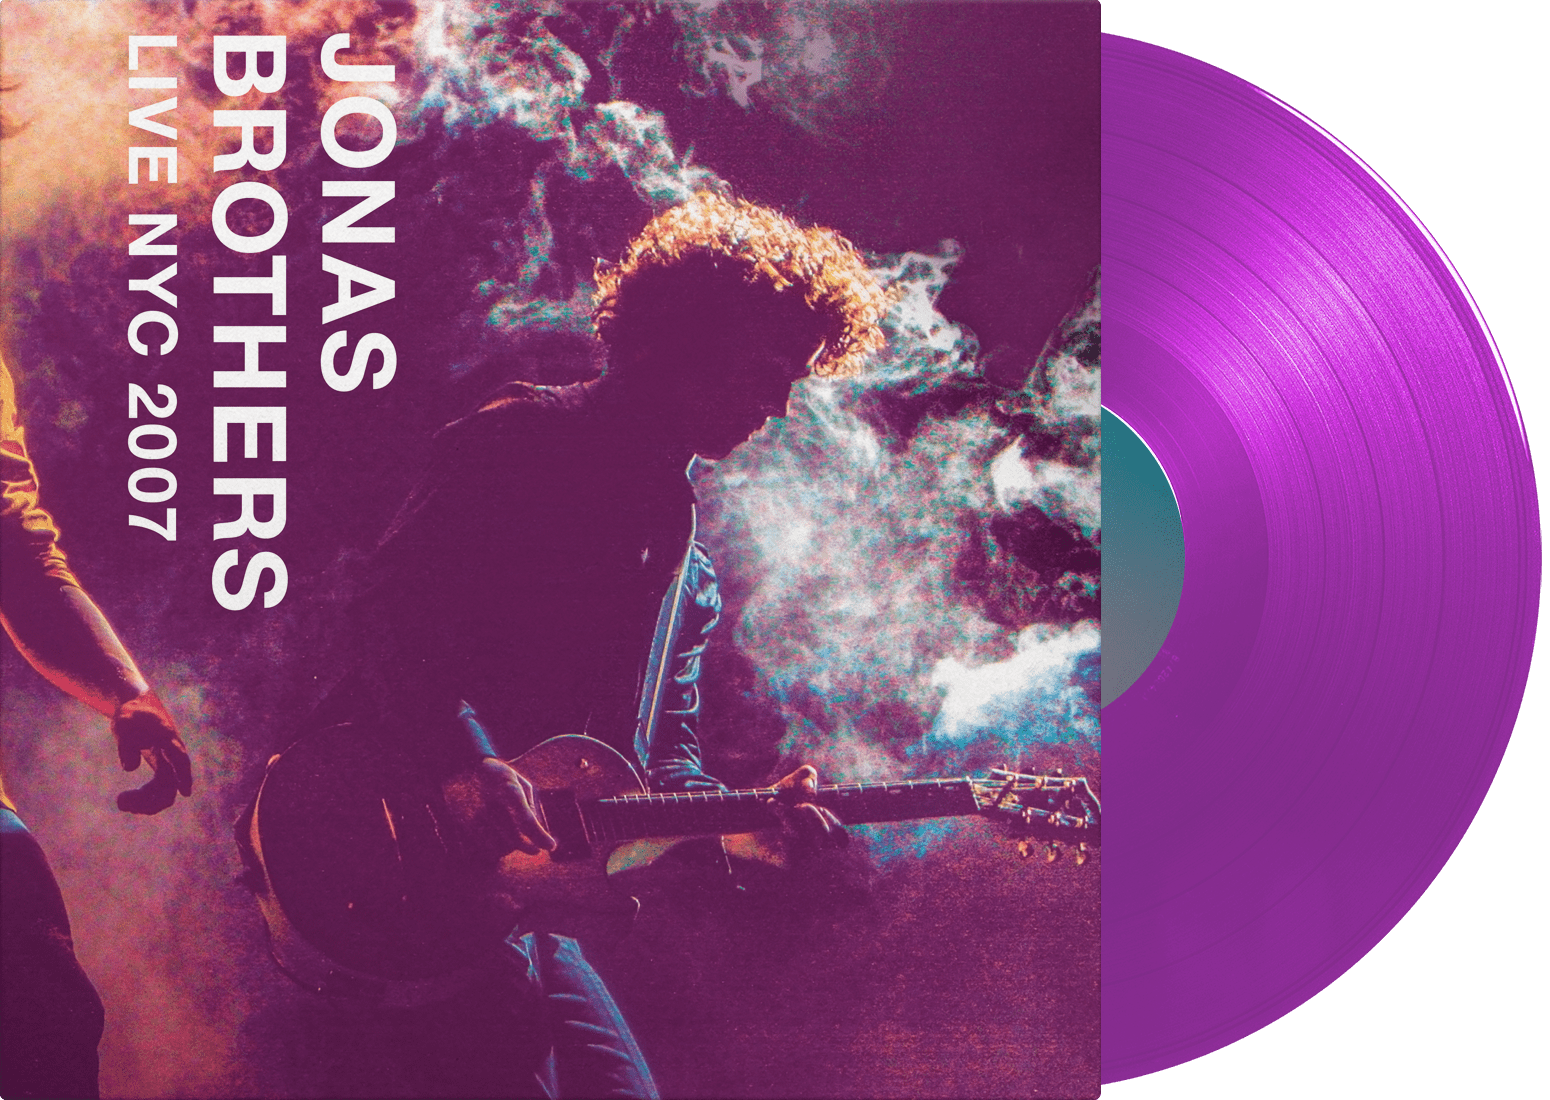 Jonas Brothers - Live NYC 2007 LP (Purple with smoke) - JONAS VINYL CLUB